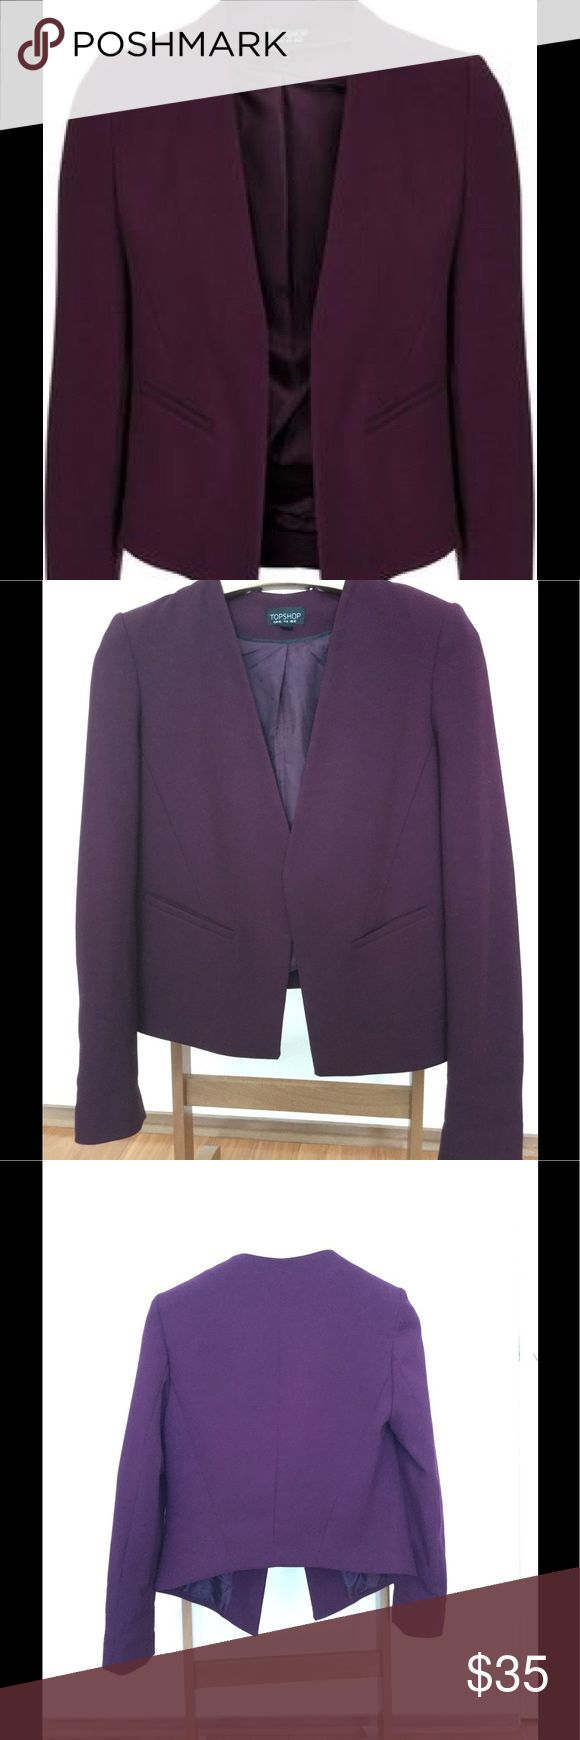 Topshop Slim Curve Blazer oxblood Slim tailored jacket with back curve detail and open front. Slight wear on lining near label (pictured). Otherwise, great condition, no other noticeable wear.  Topshop called this color oxblood, but its more purple than red. Topshop Jackets & Coats Blazers